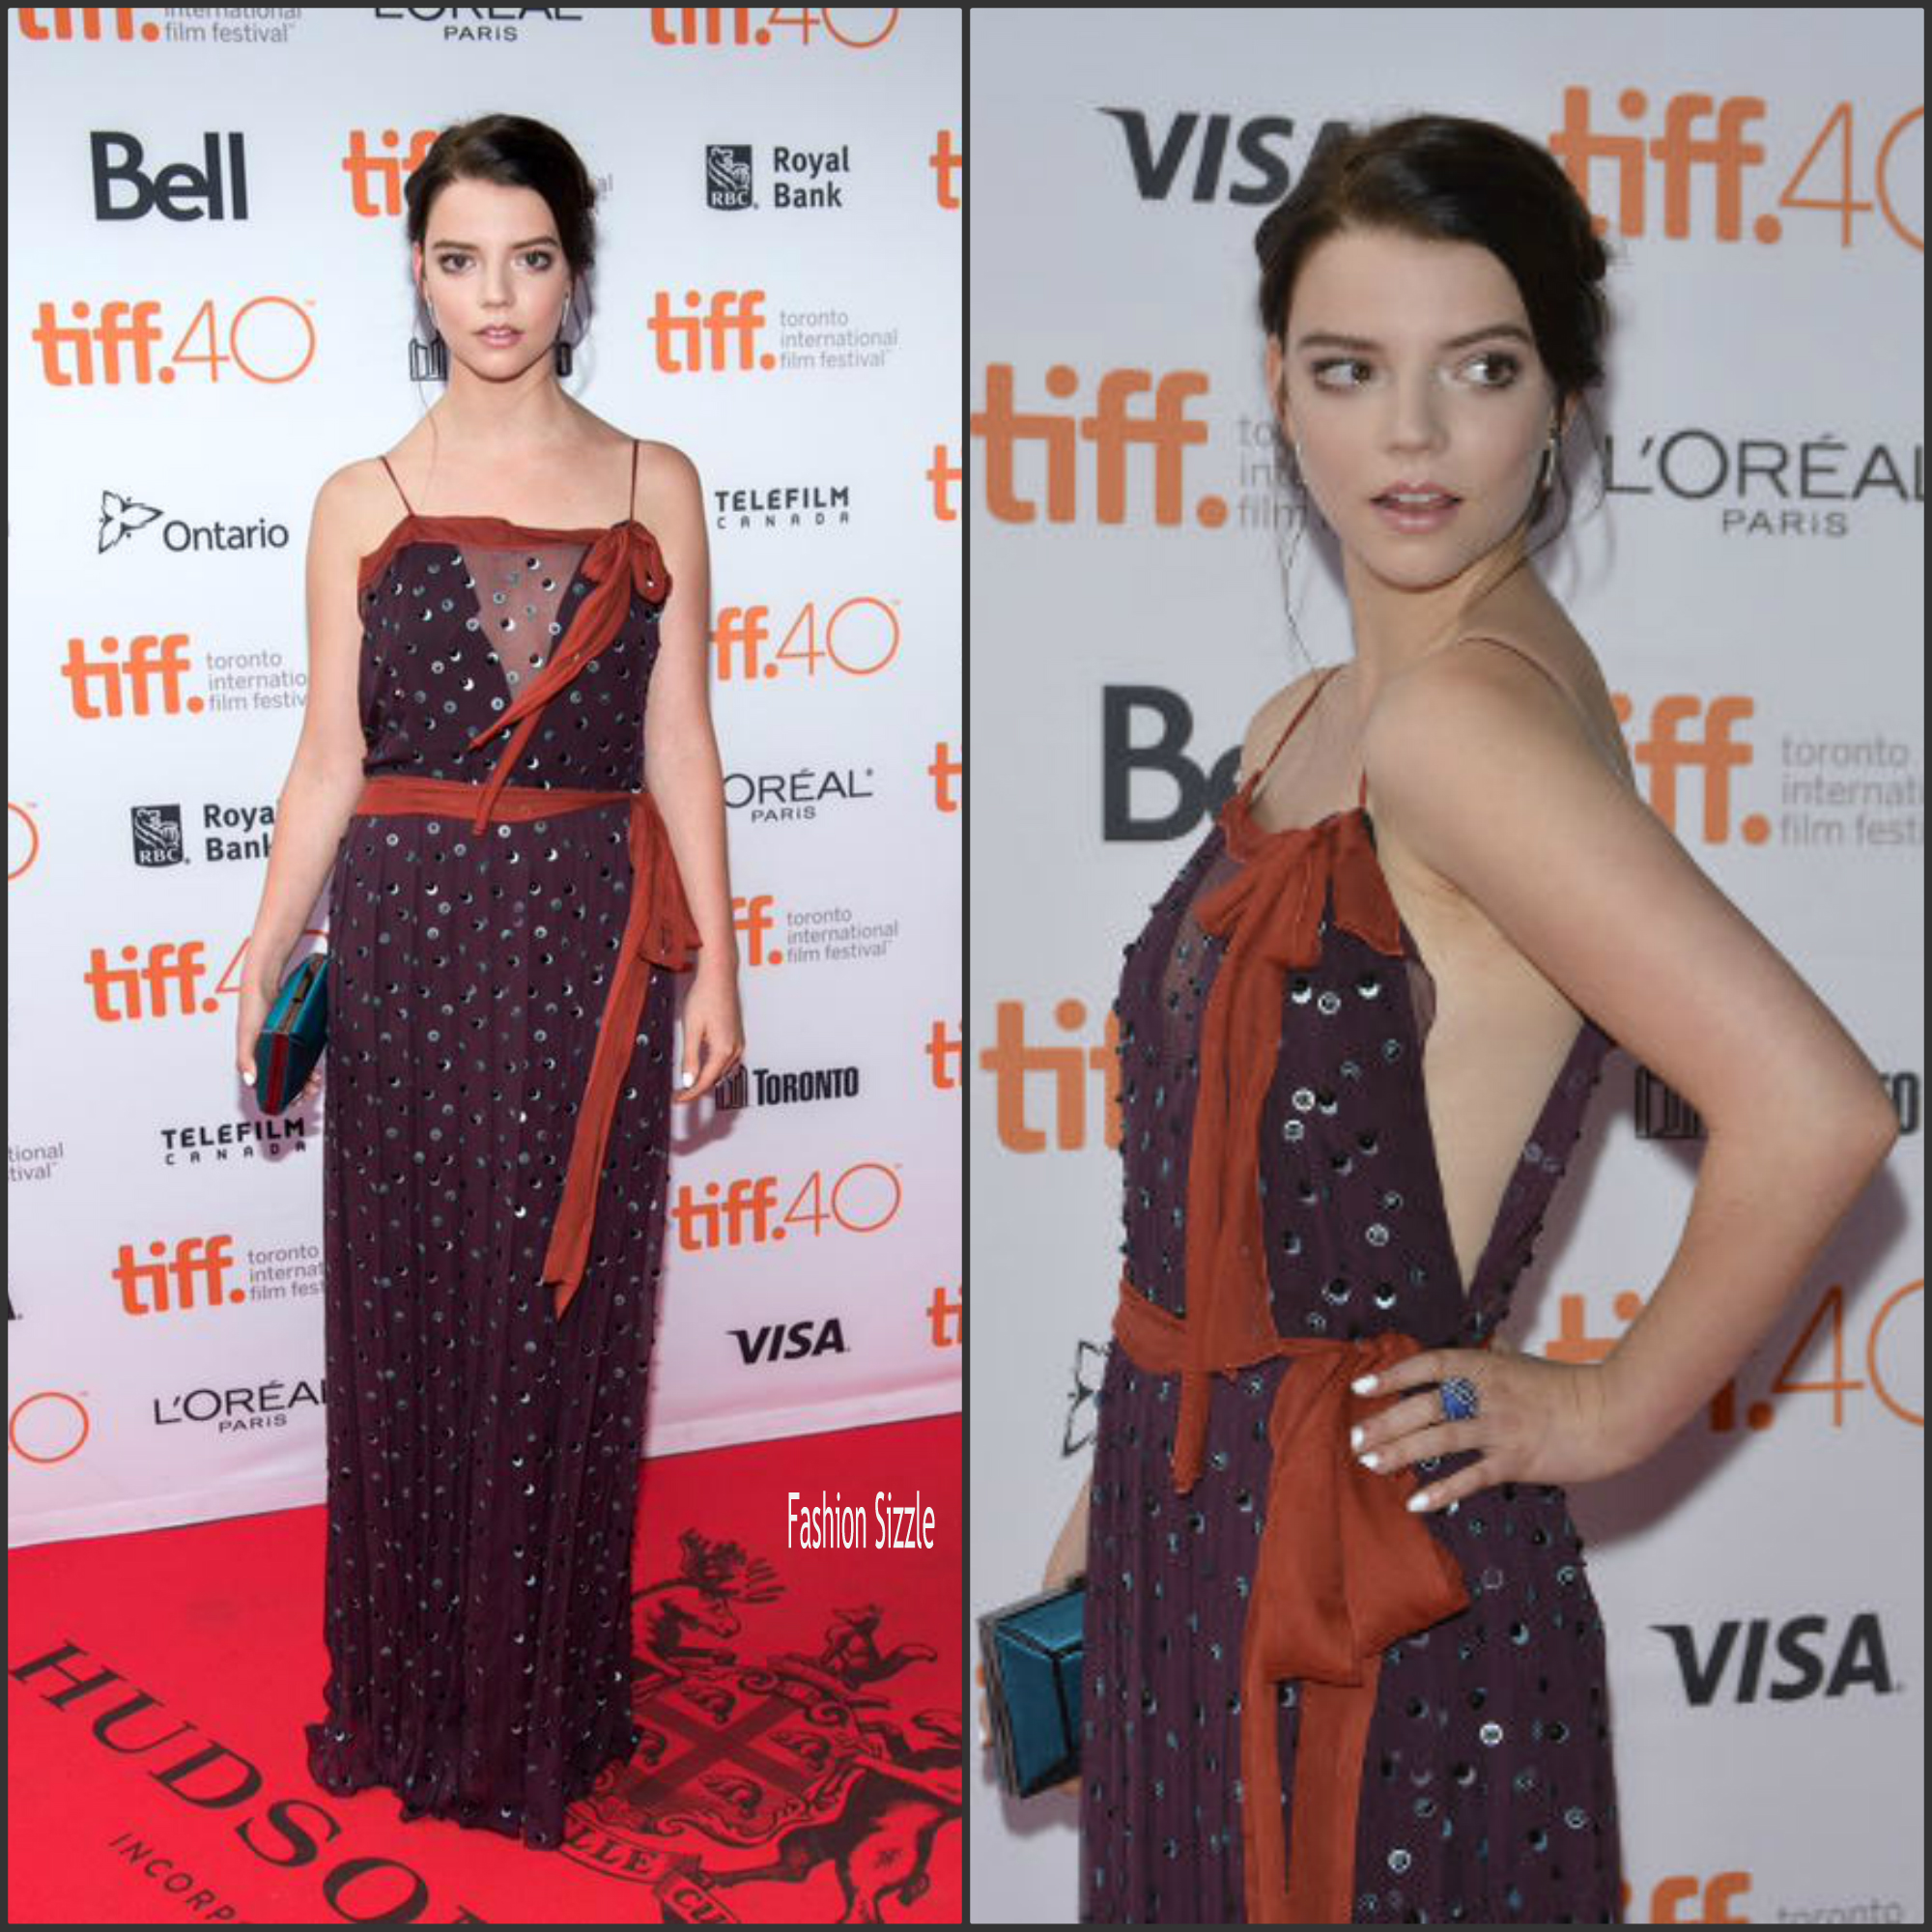 anya-taylor-joy-in-pradaat-the-witch-toronto-film-festival-premiere